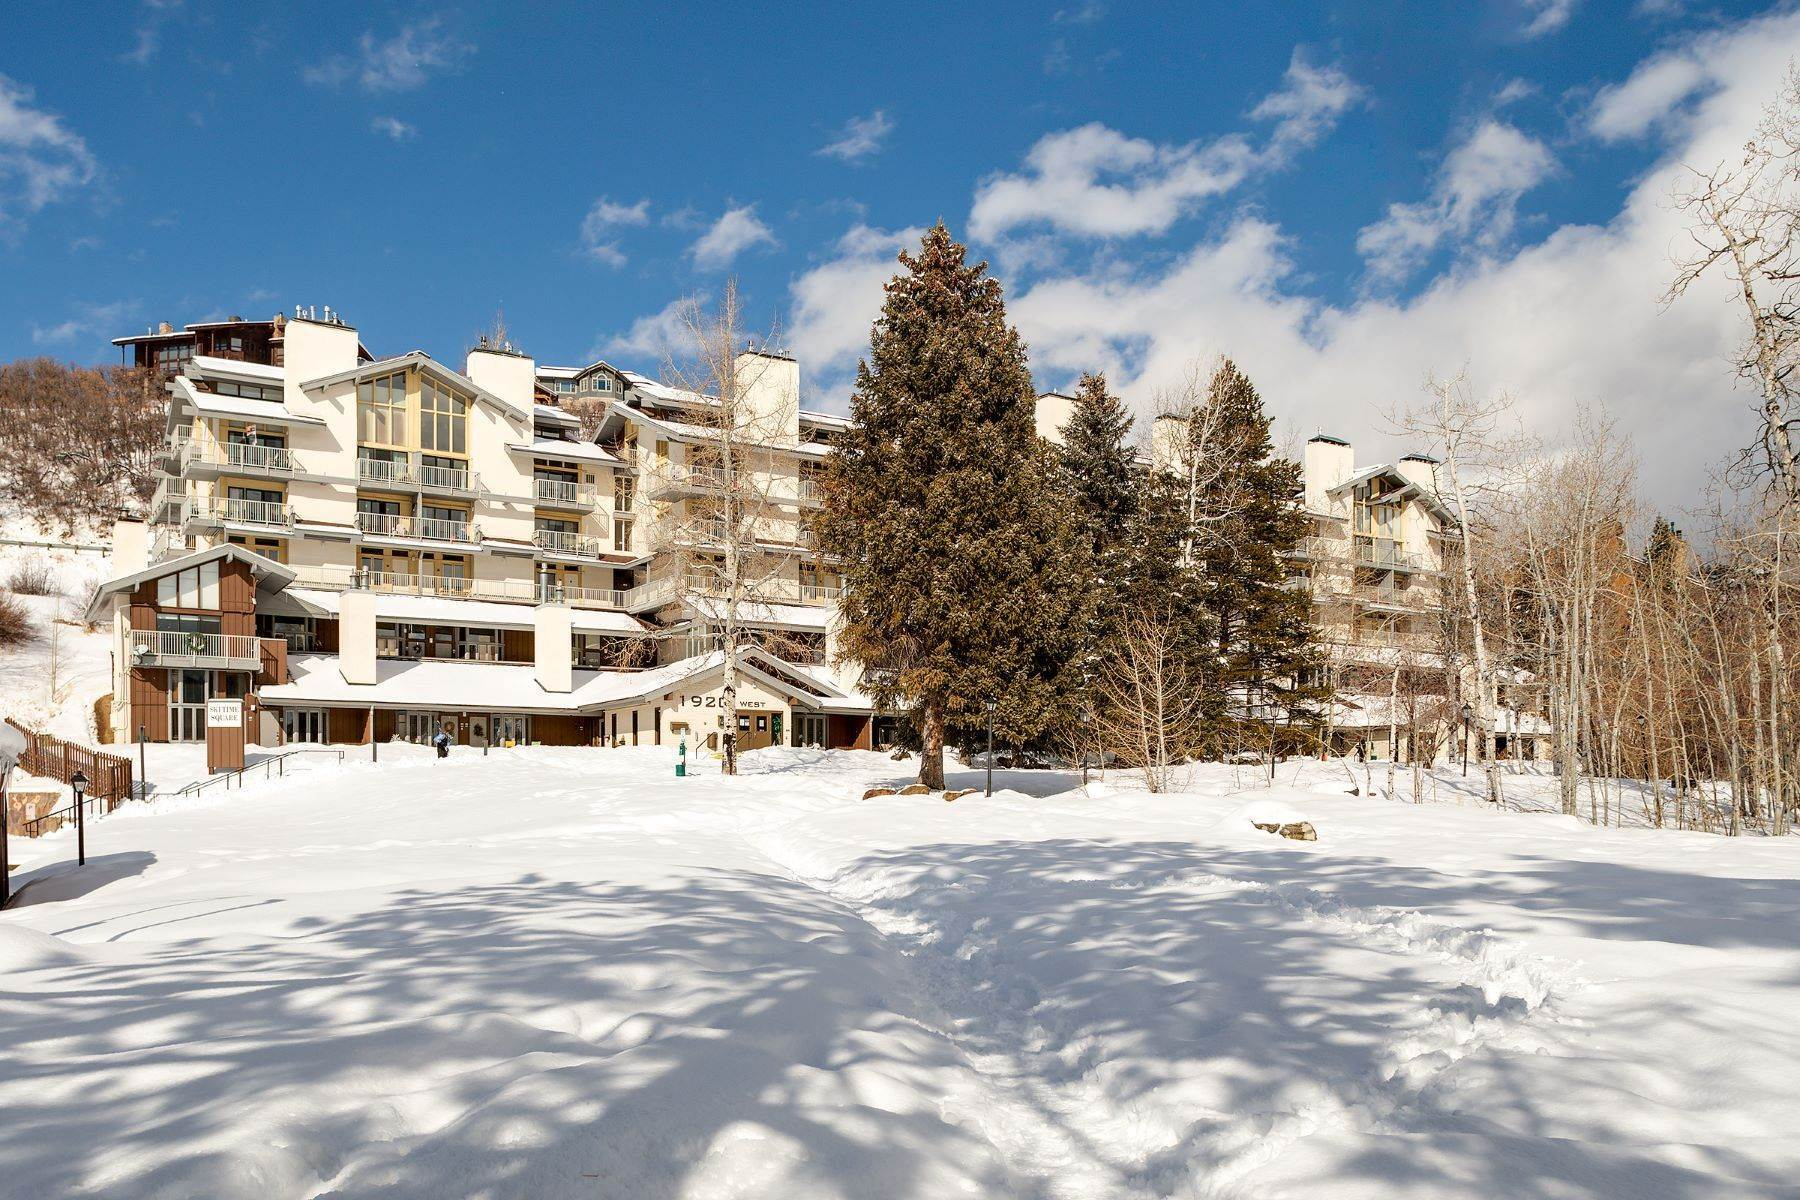 Condominiums for Sale at Ski Time Square Condominiums 1920 Ski Time Square Unit# 311 Steamboat Springs, Colorado 80487 United States